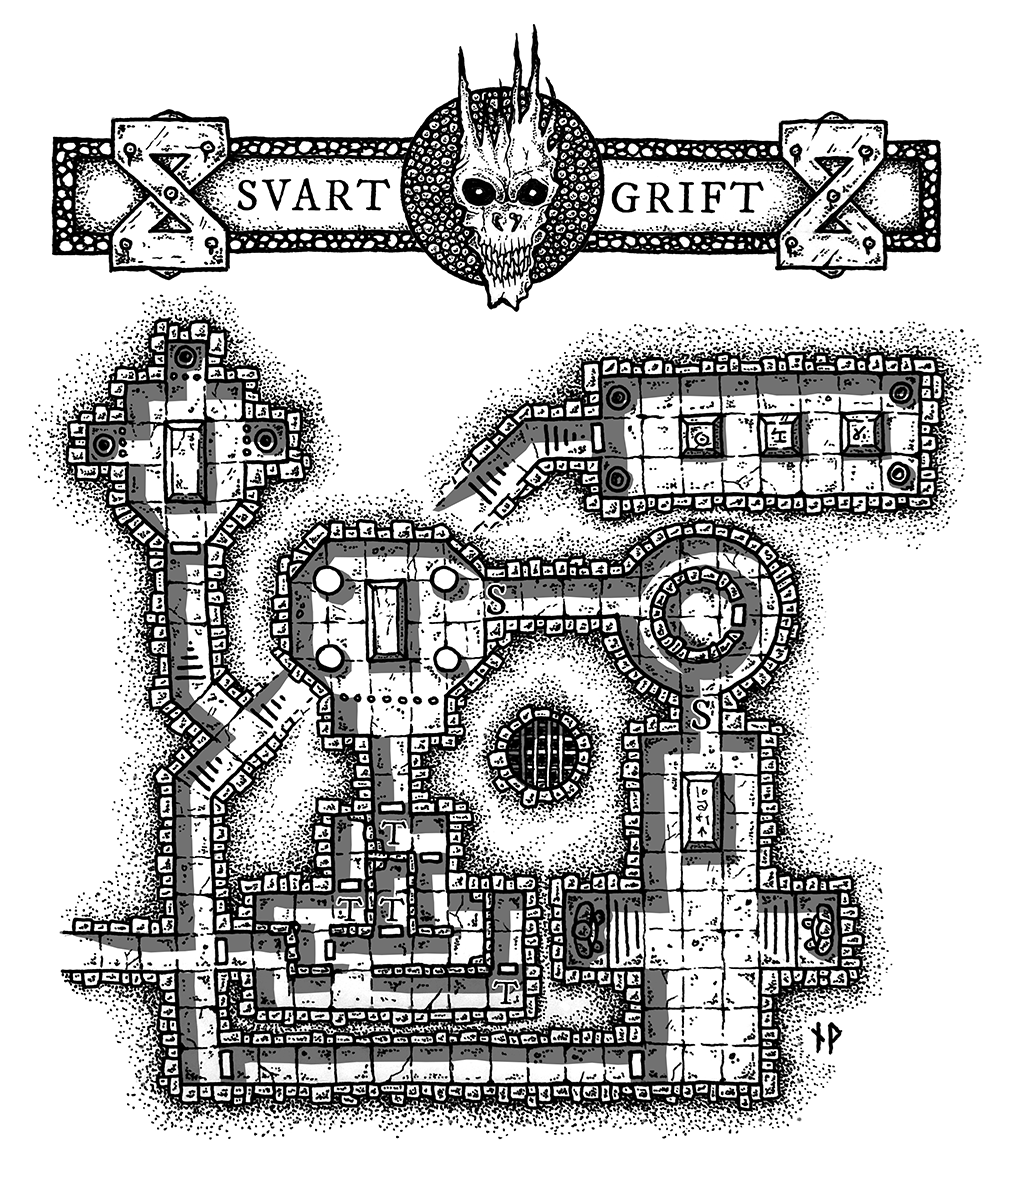 SVART GRIFT – ancient tomb dungeon map